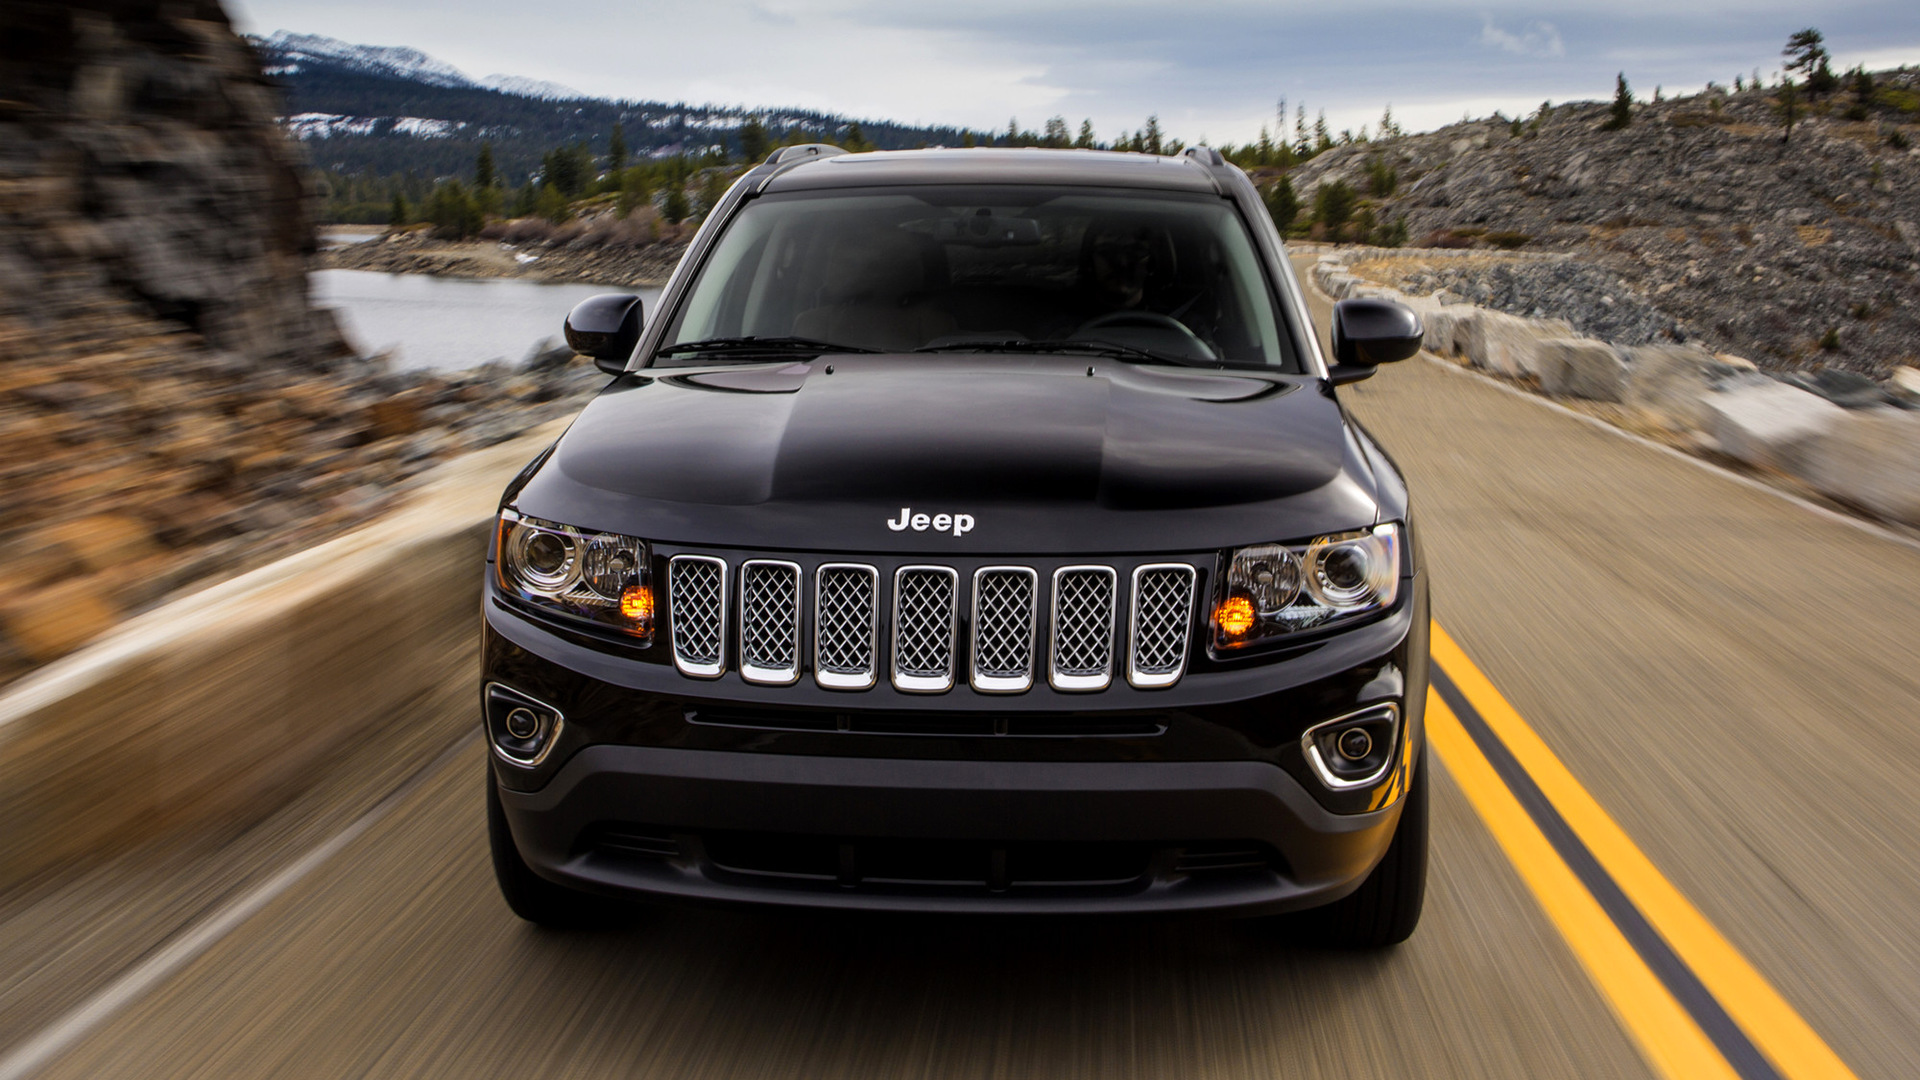 2016 Dodge Ram >> 2013 Jeep Compass - Wallpapers and HD Images | Car Pixel